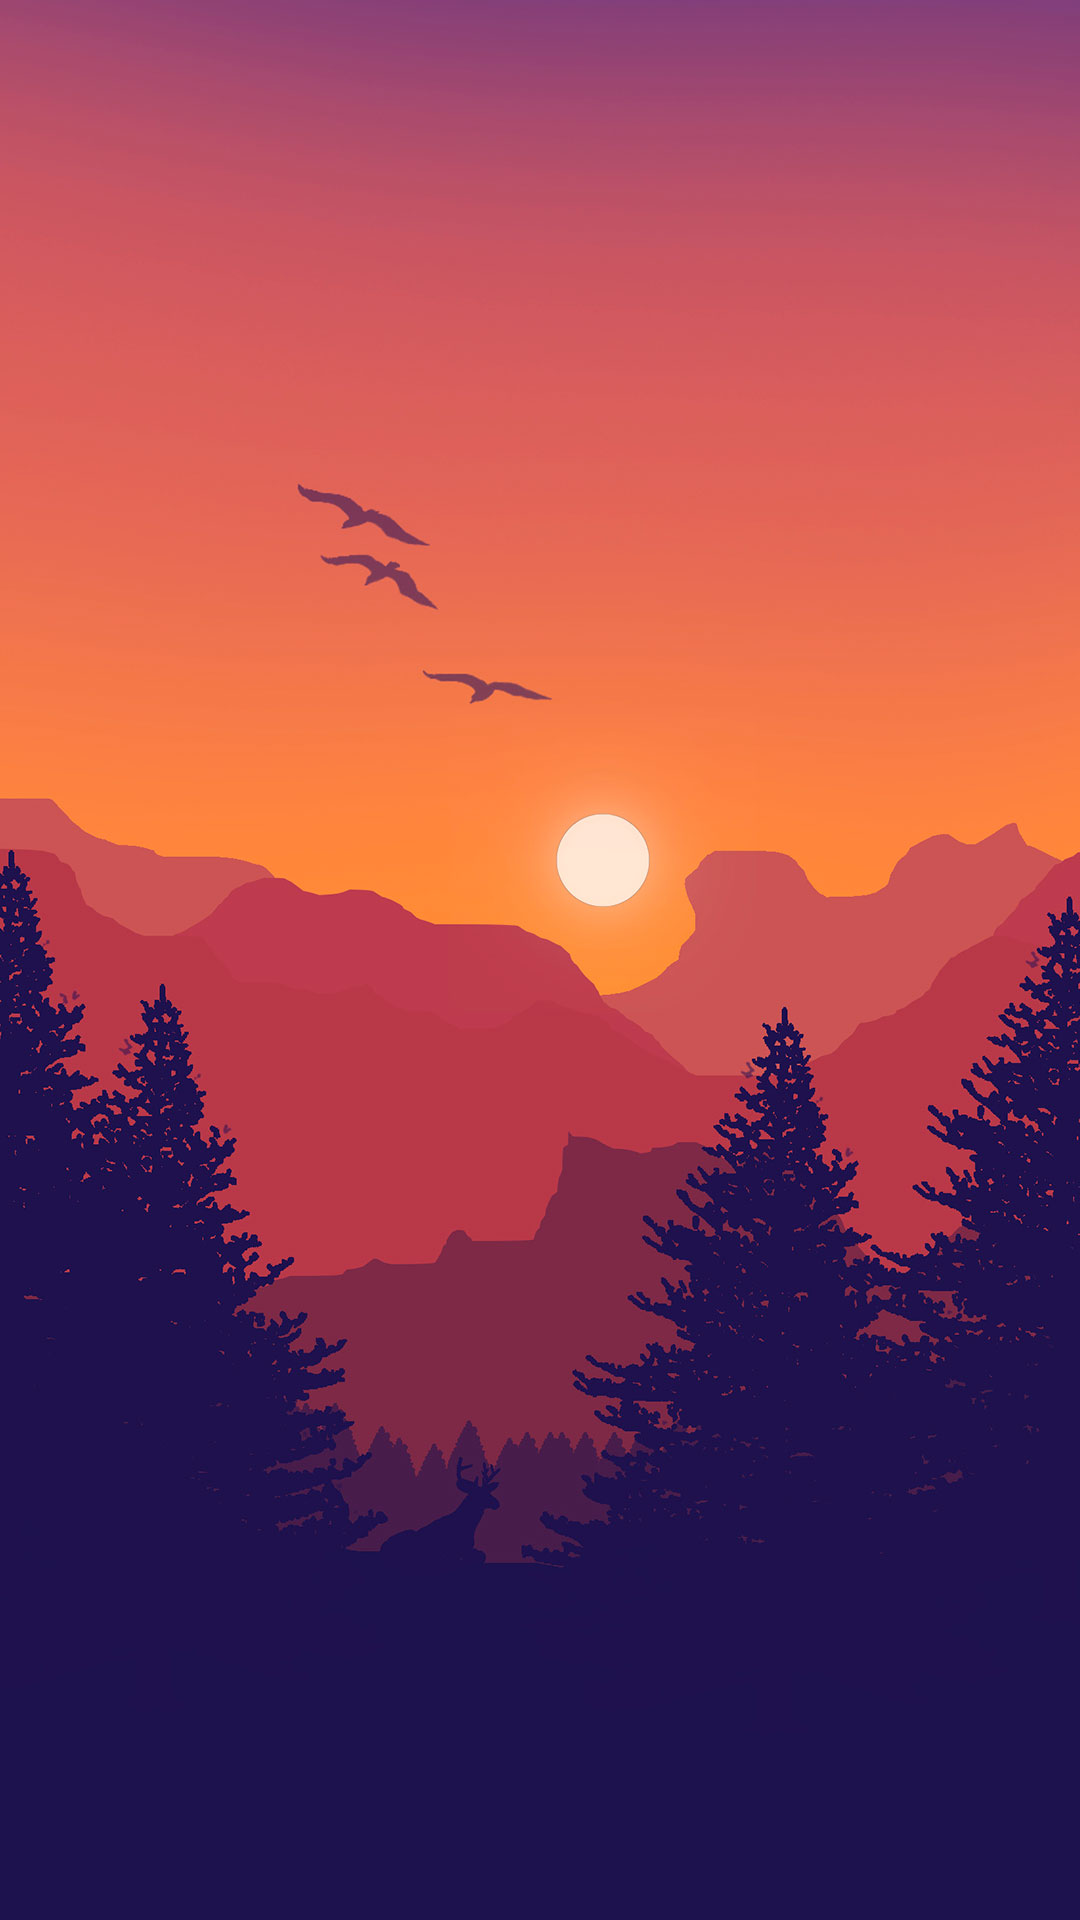 iPhone wallpaper illustration mountains Illustration